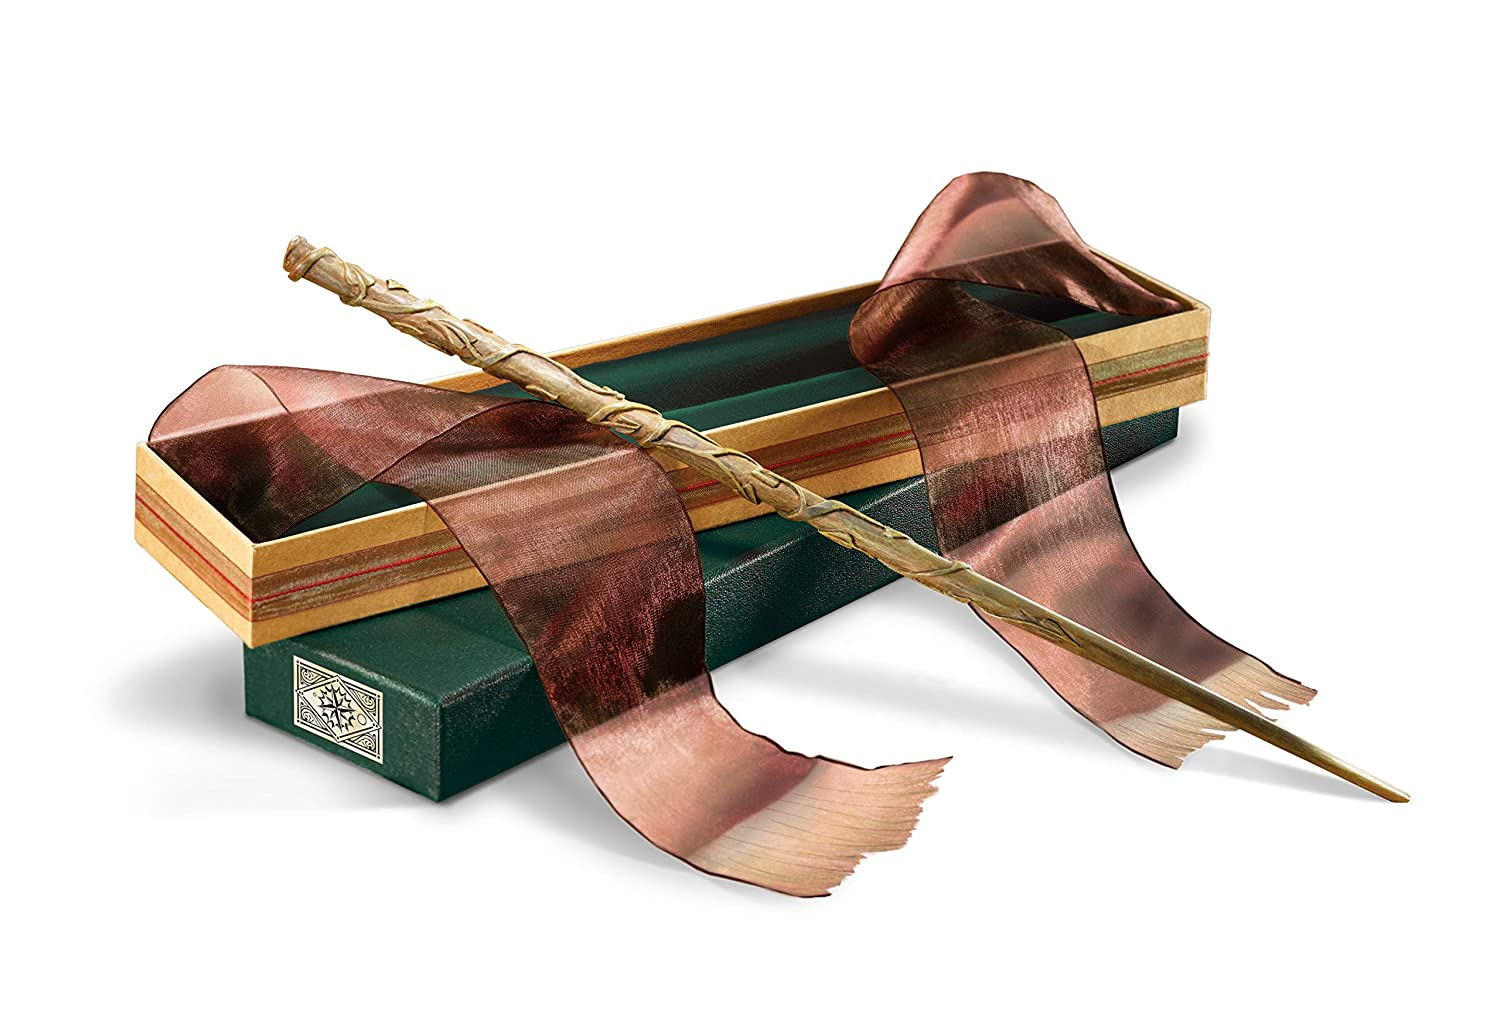 Hermione Granger's Wand with Ollivanders Wand Box